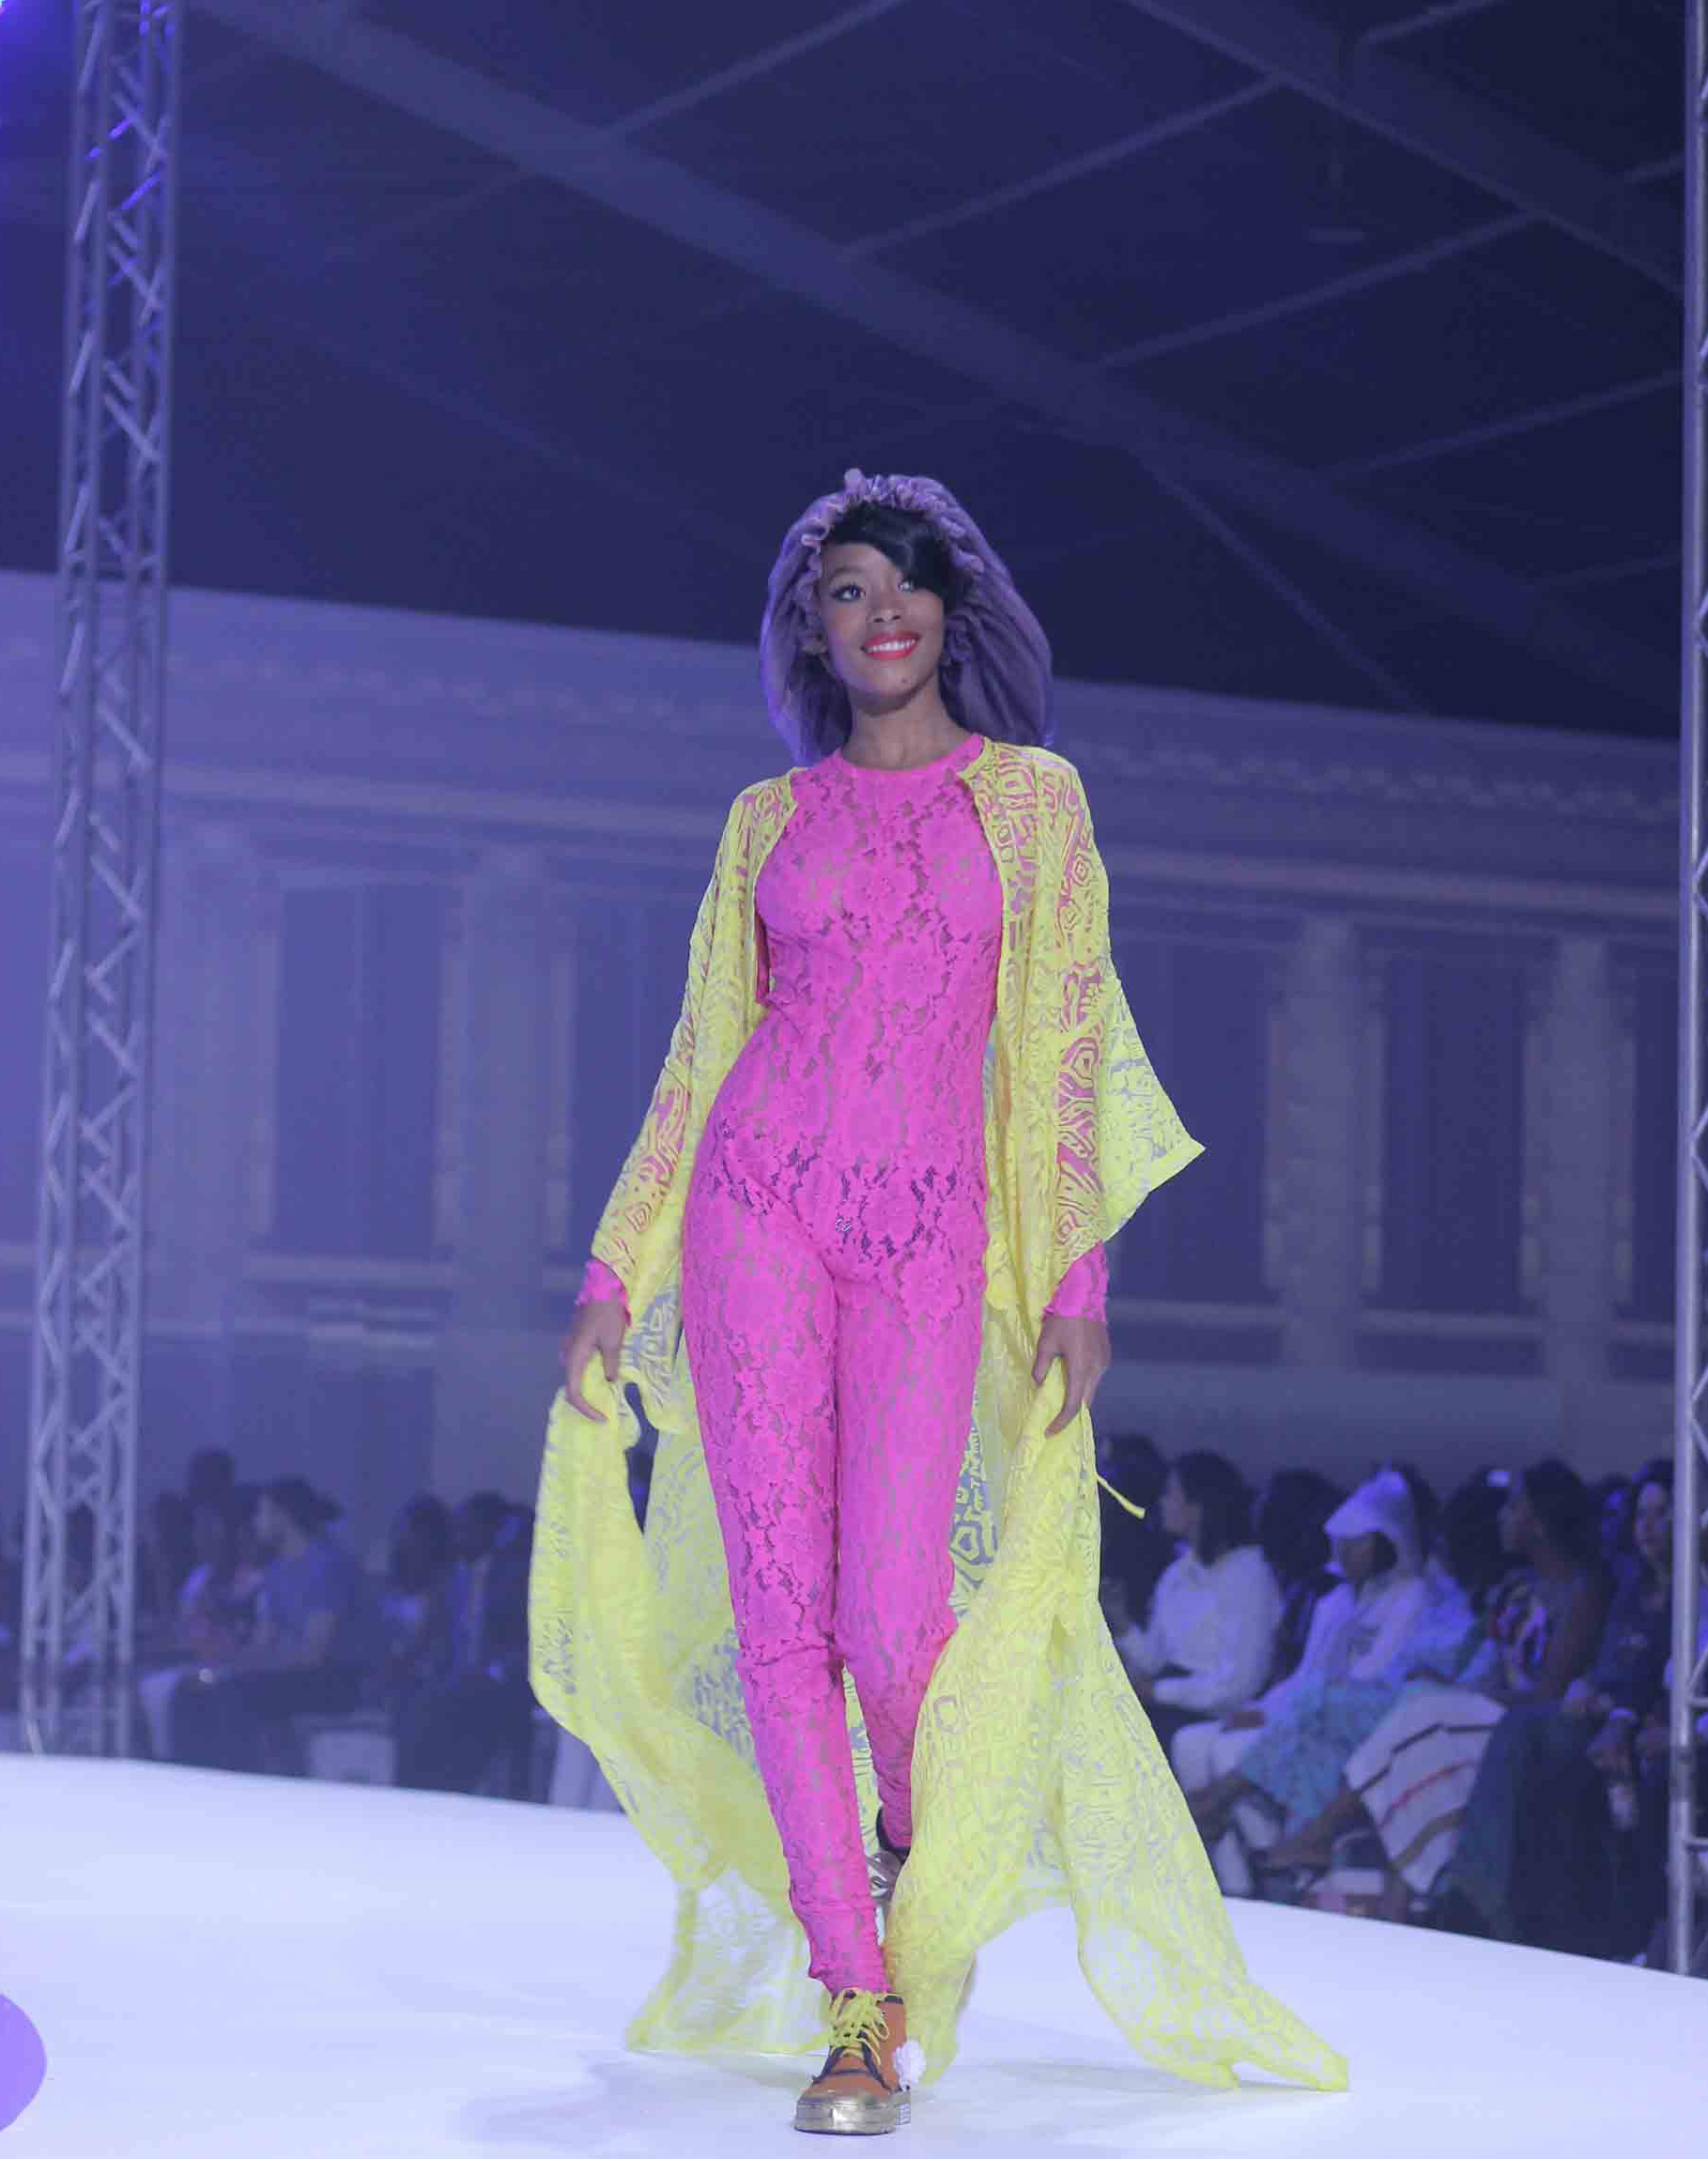 FLUROSCENT LACE - ITUEN BASIThe neon trend is here to stay! Zingy shades of lime, lemon, tangerine and fuchsia were evident at all four cities (revert to our SS19 fashion report). Keep it feminine by purchasing these punchy colors in lace.